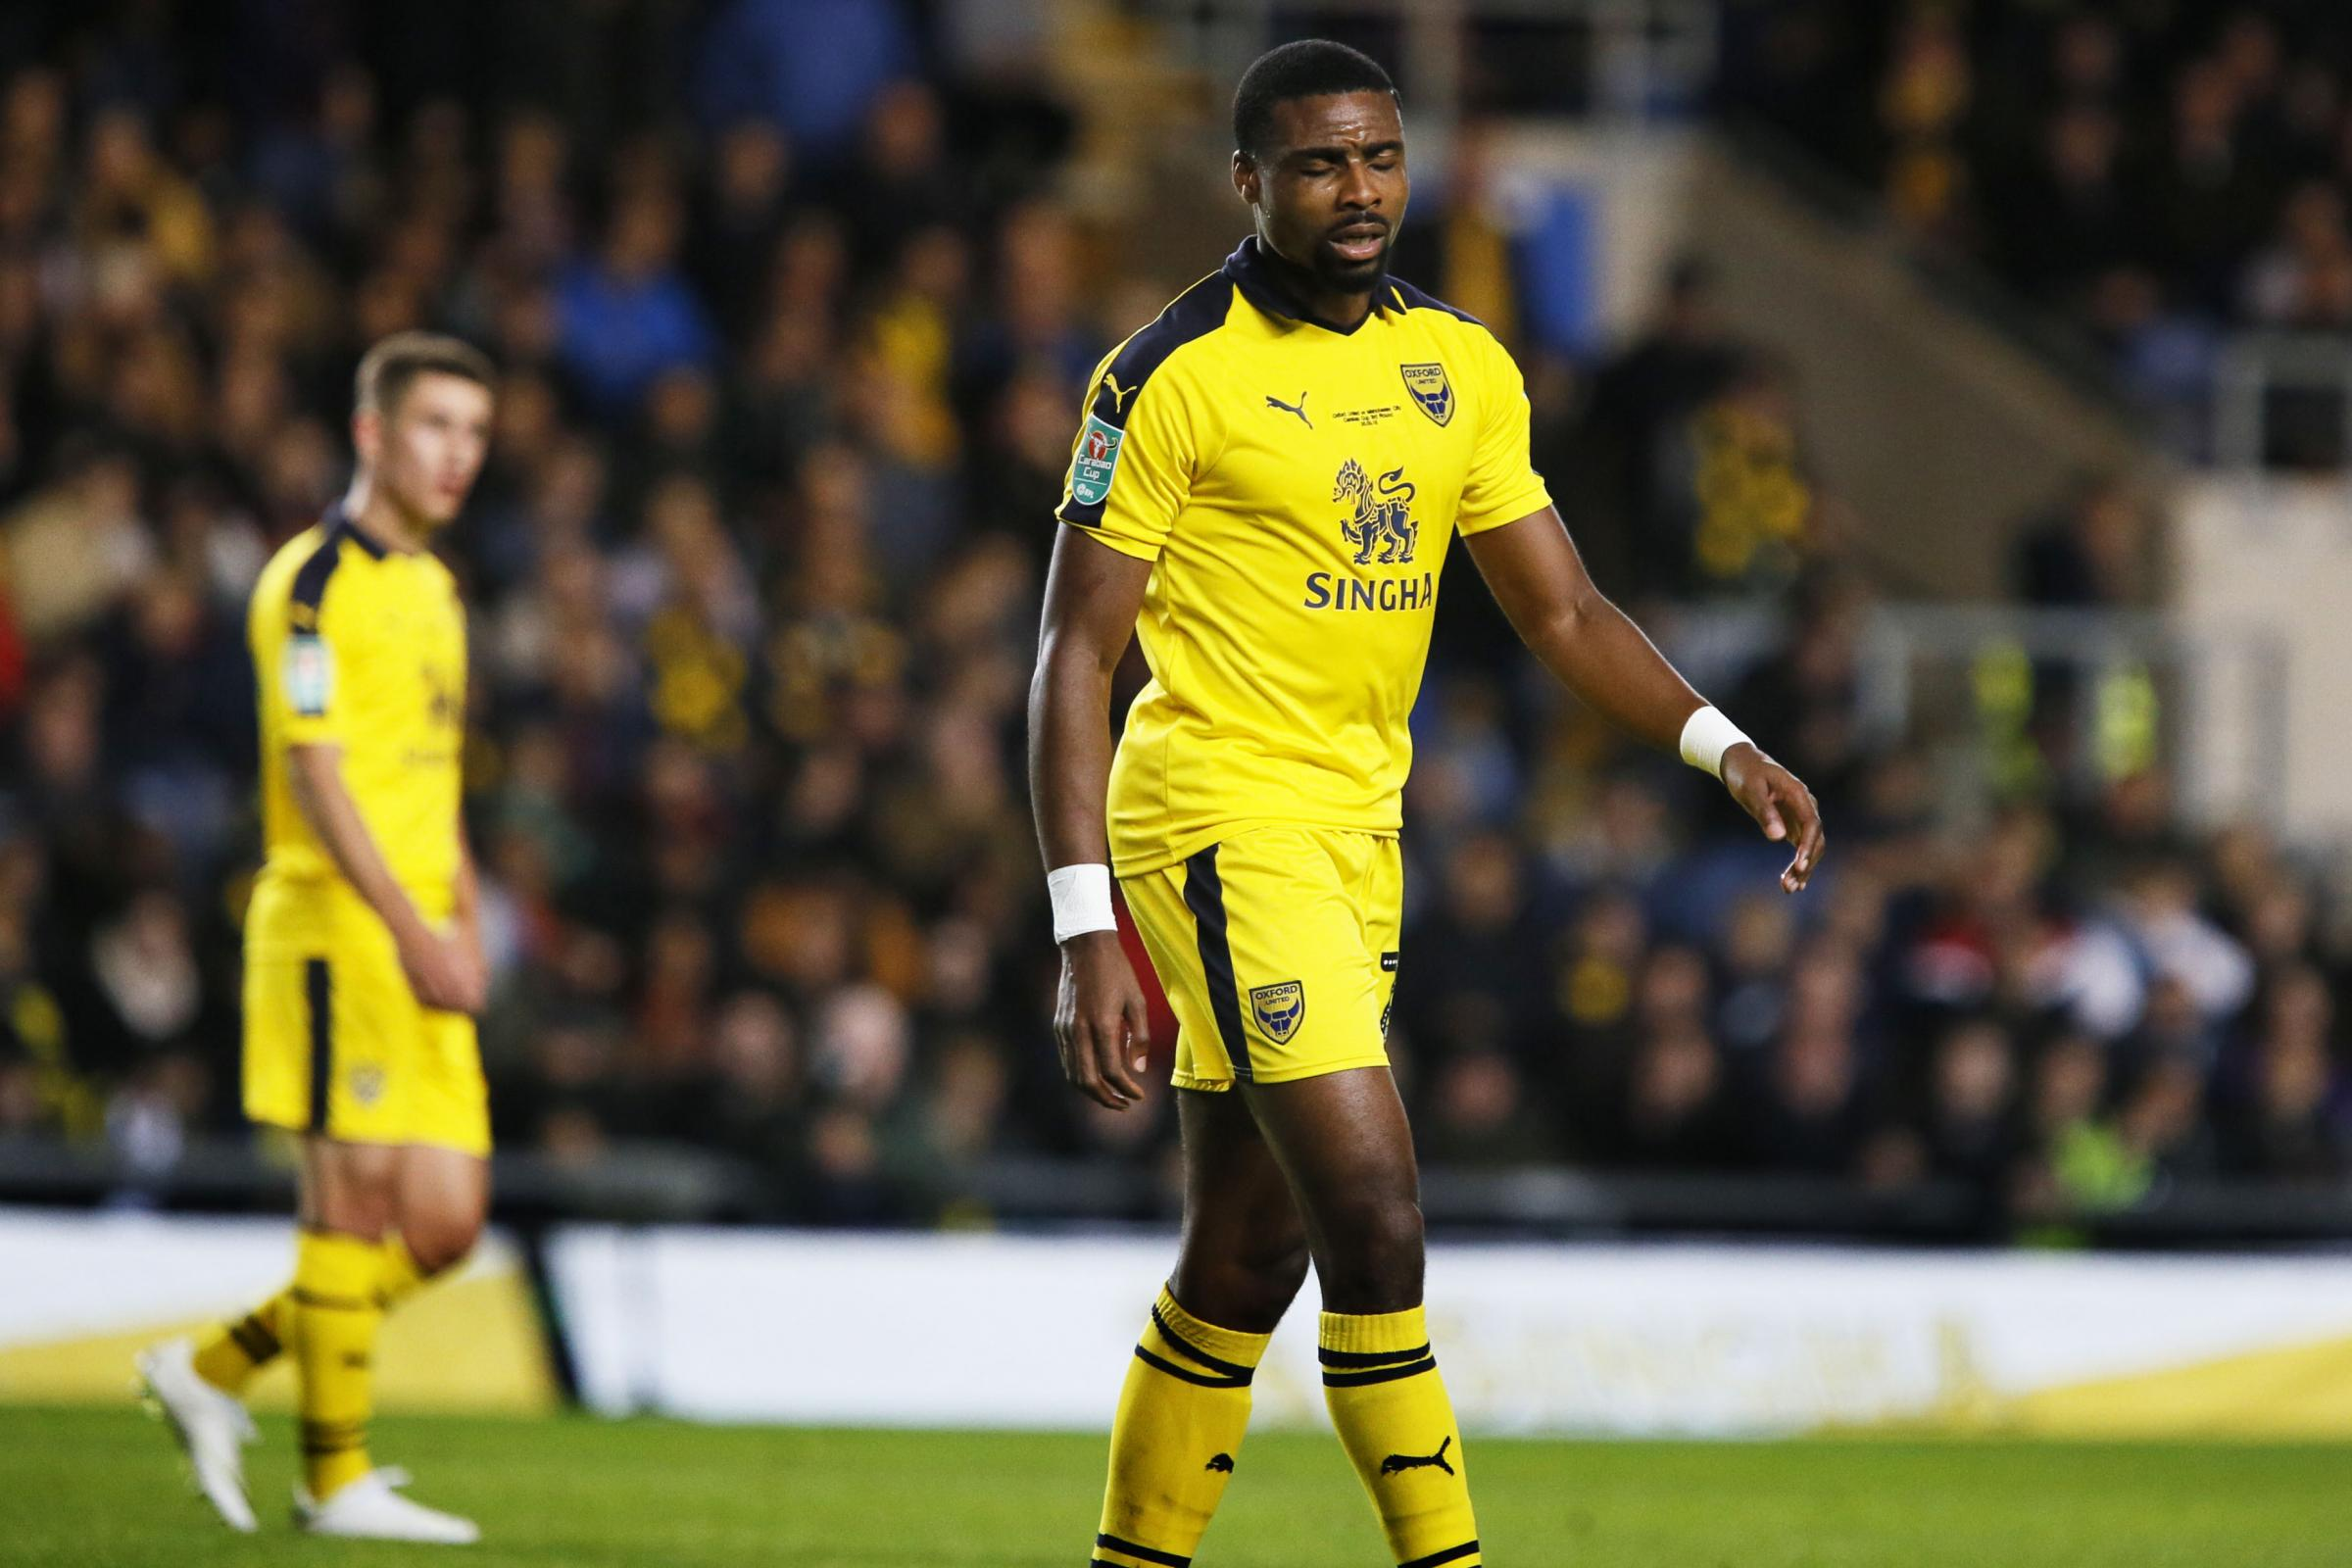 BIG BLOW: Jon Obika is set to miss the rest of the season with a knee injury